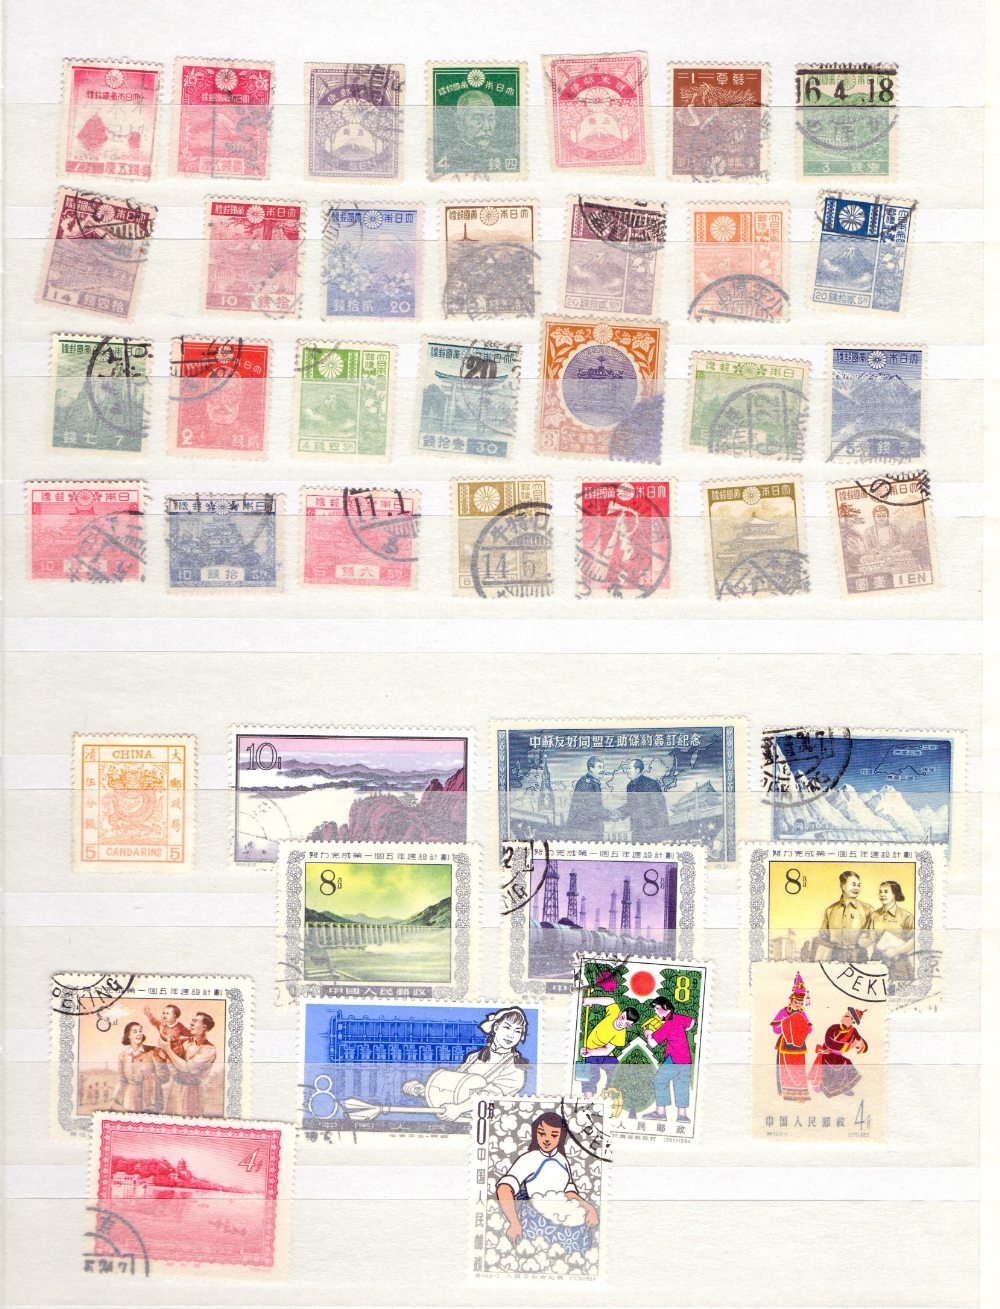 Lot 53 - STAMPS : ASIA, stockbook & stock leaves with mostly S.E.